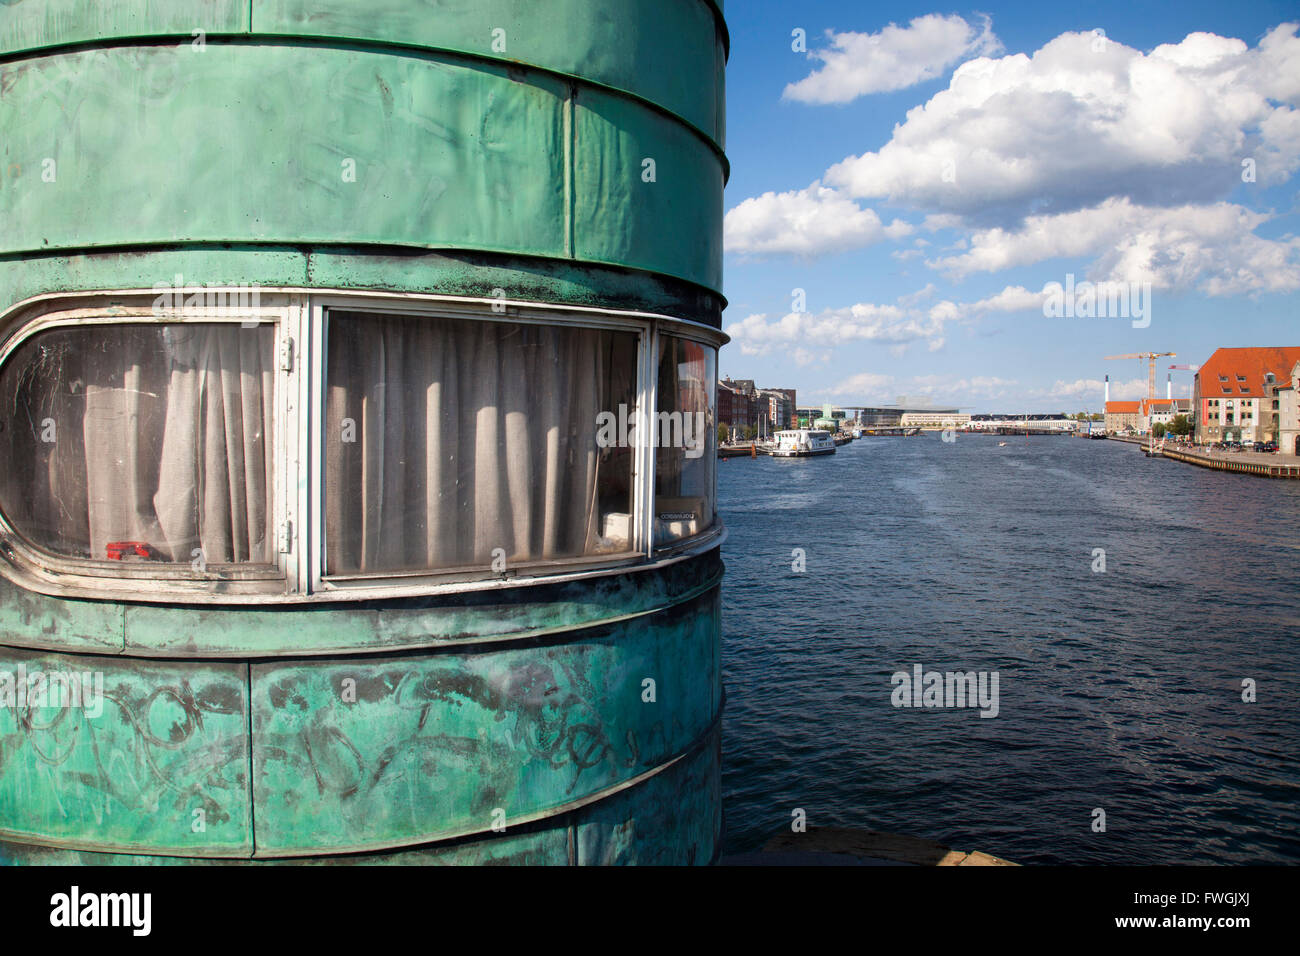 Round Building And River - Stock Image